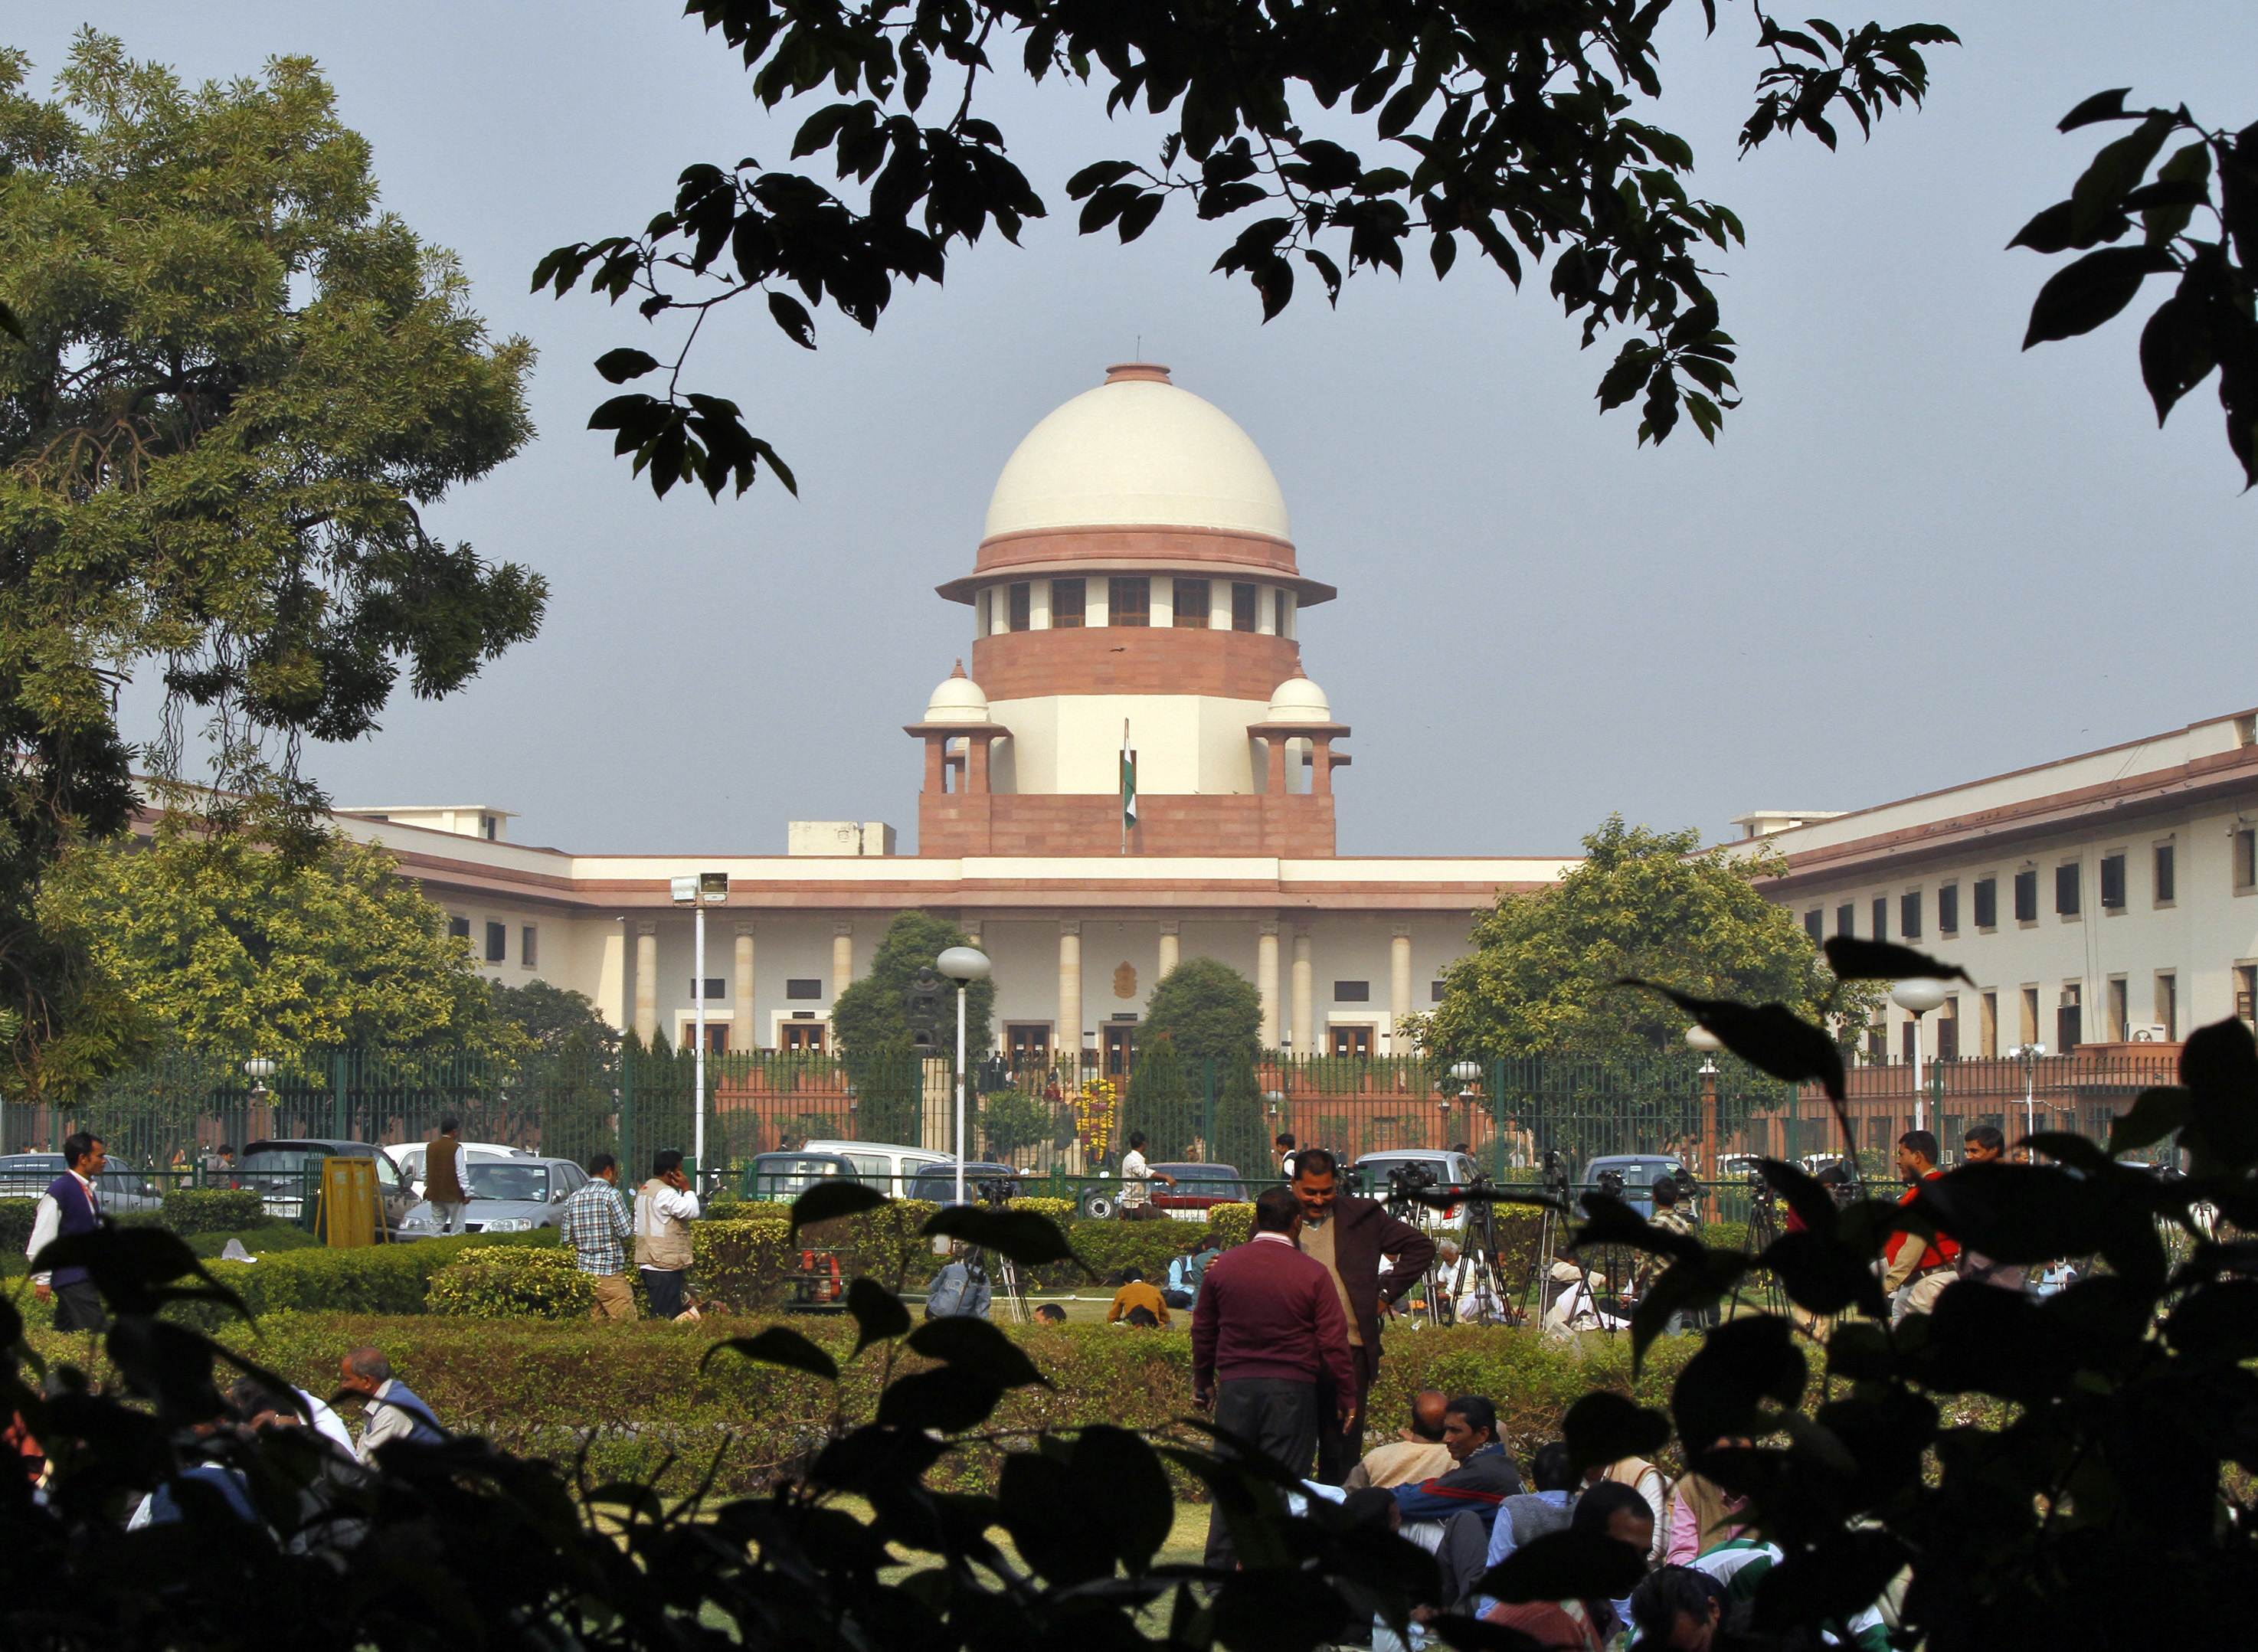 A view of the Indian Supreme Court building is seen in New Delhi December 7, 2010. India's Supreme Court on Monday questioned the appointment of the country's top anti-corruption official, local media and a lawyer said, in a victory for the opposition and another blow for an embattled government that has become mired in corruption charges. REUTERS/B Mathur (INDIA - Tags: CRIME LAW POLITICS BUSINESS) - RTXVHUR